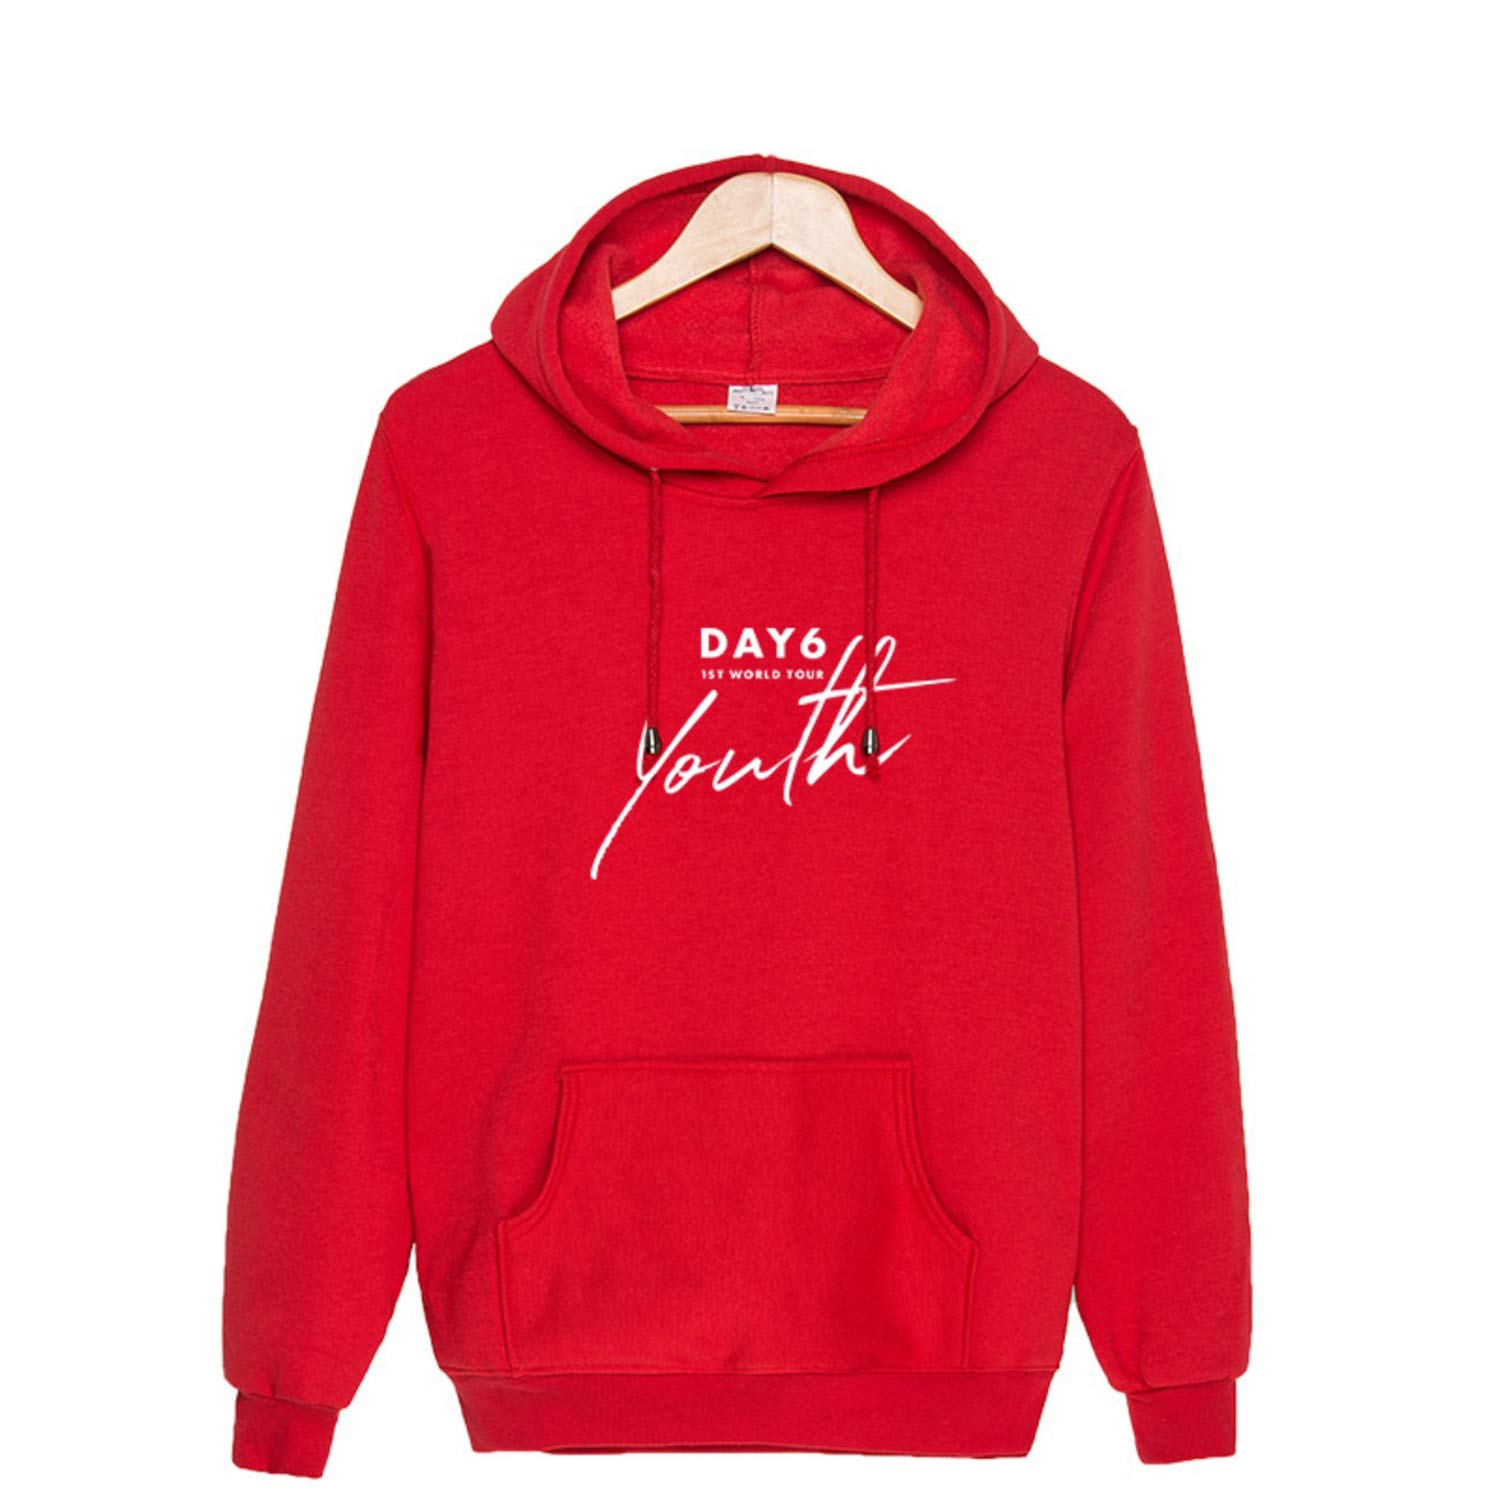 Kpop DAY6 Hoodie 1ST World Tour Youth Jae Sung Jin Young K Won Pil Do Woon Sweater Pollover Jacket